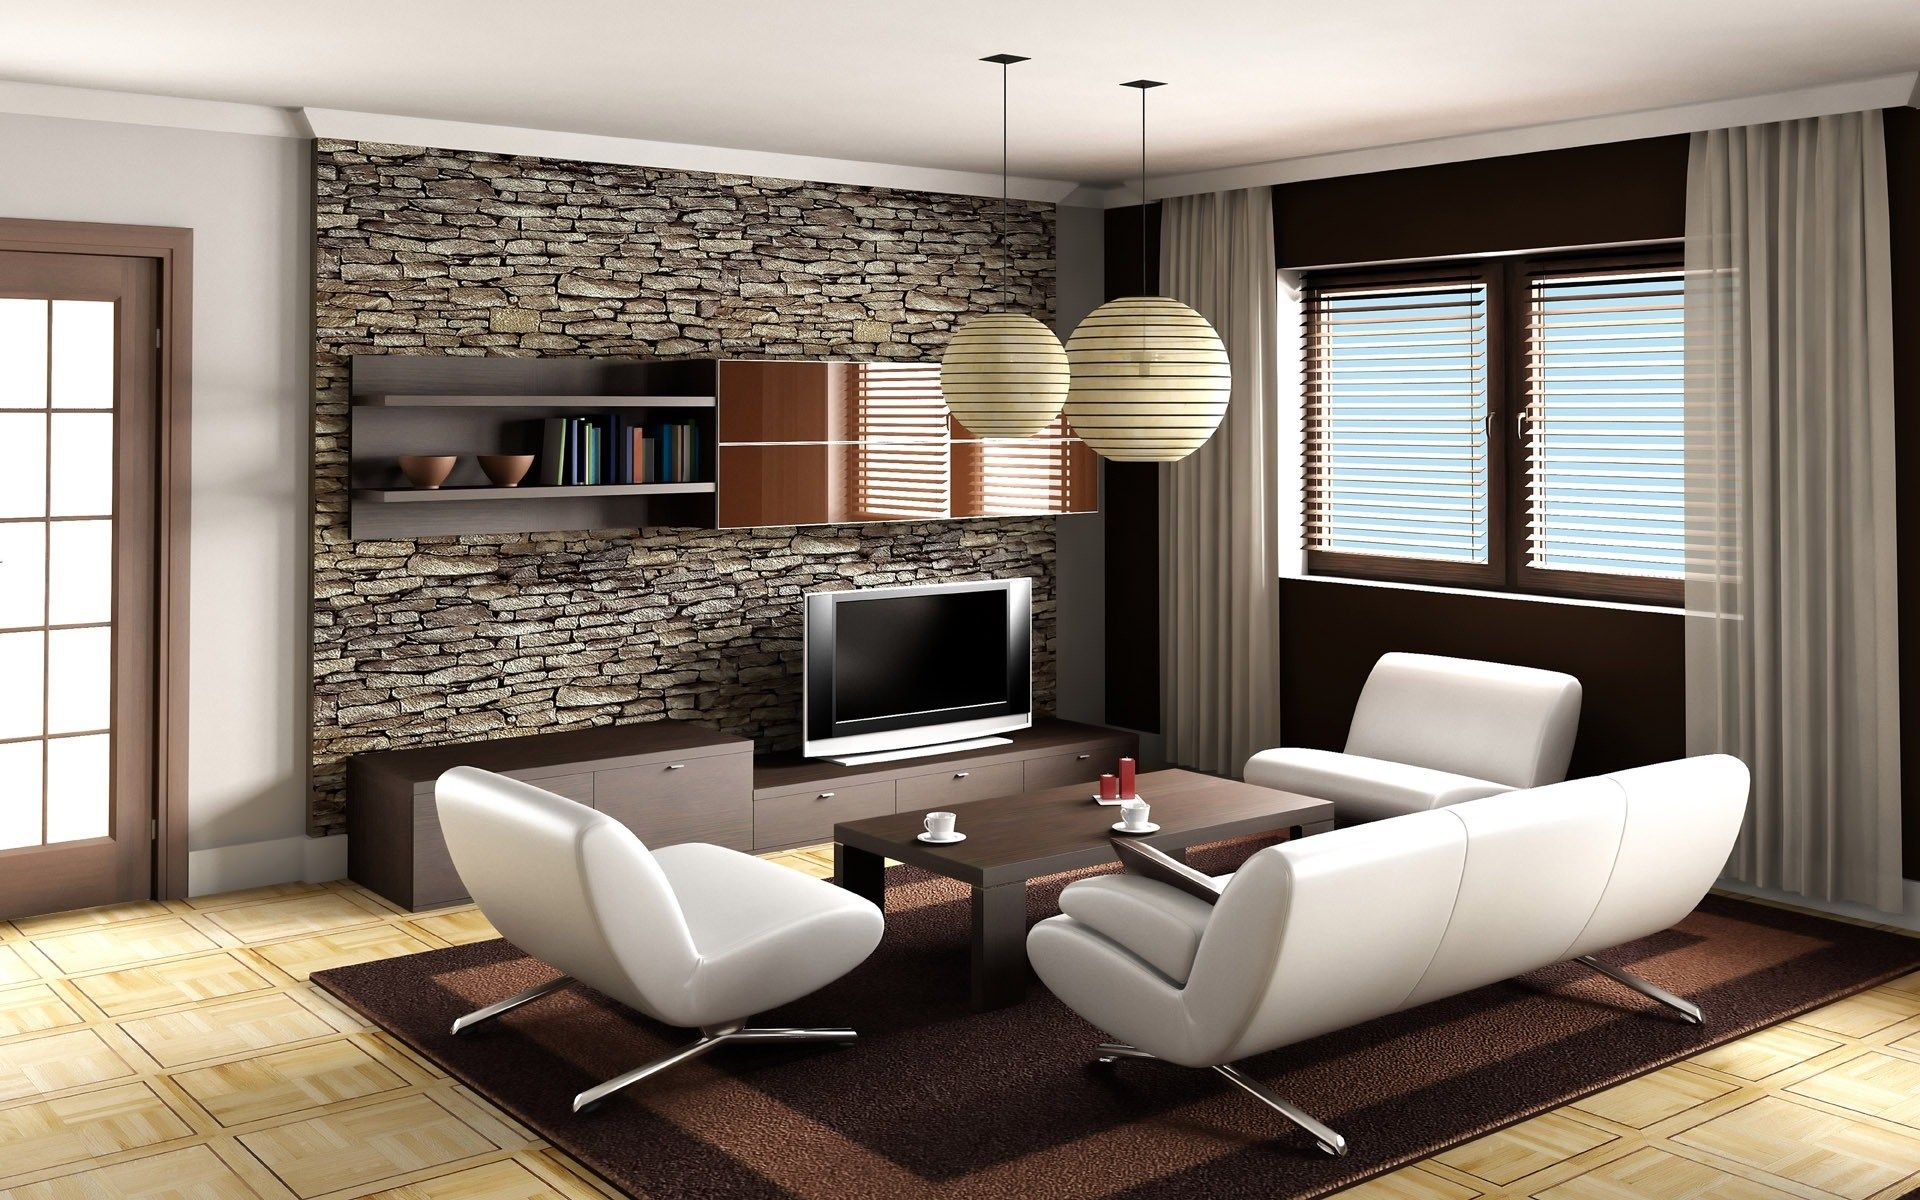 Free High Resolution Wallpaper Room With Images Small Living